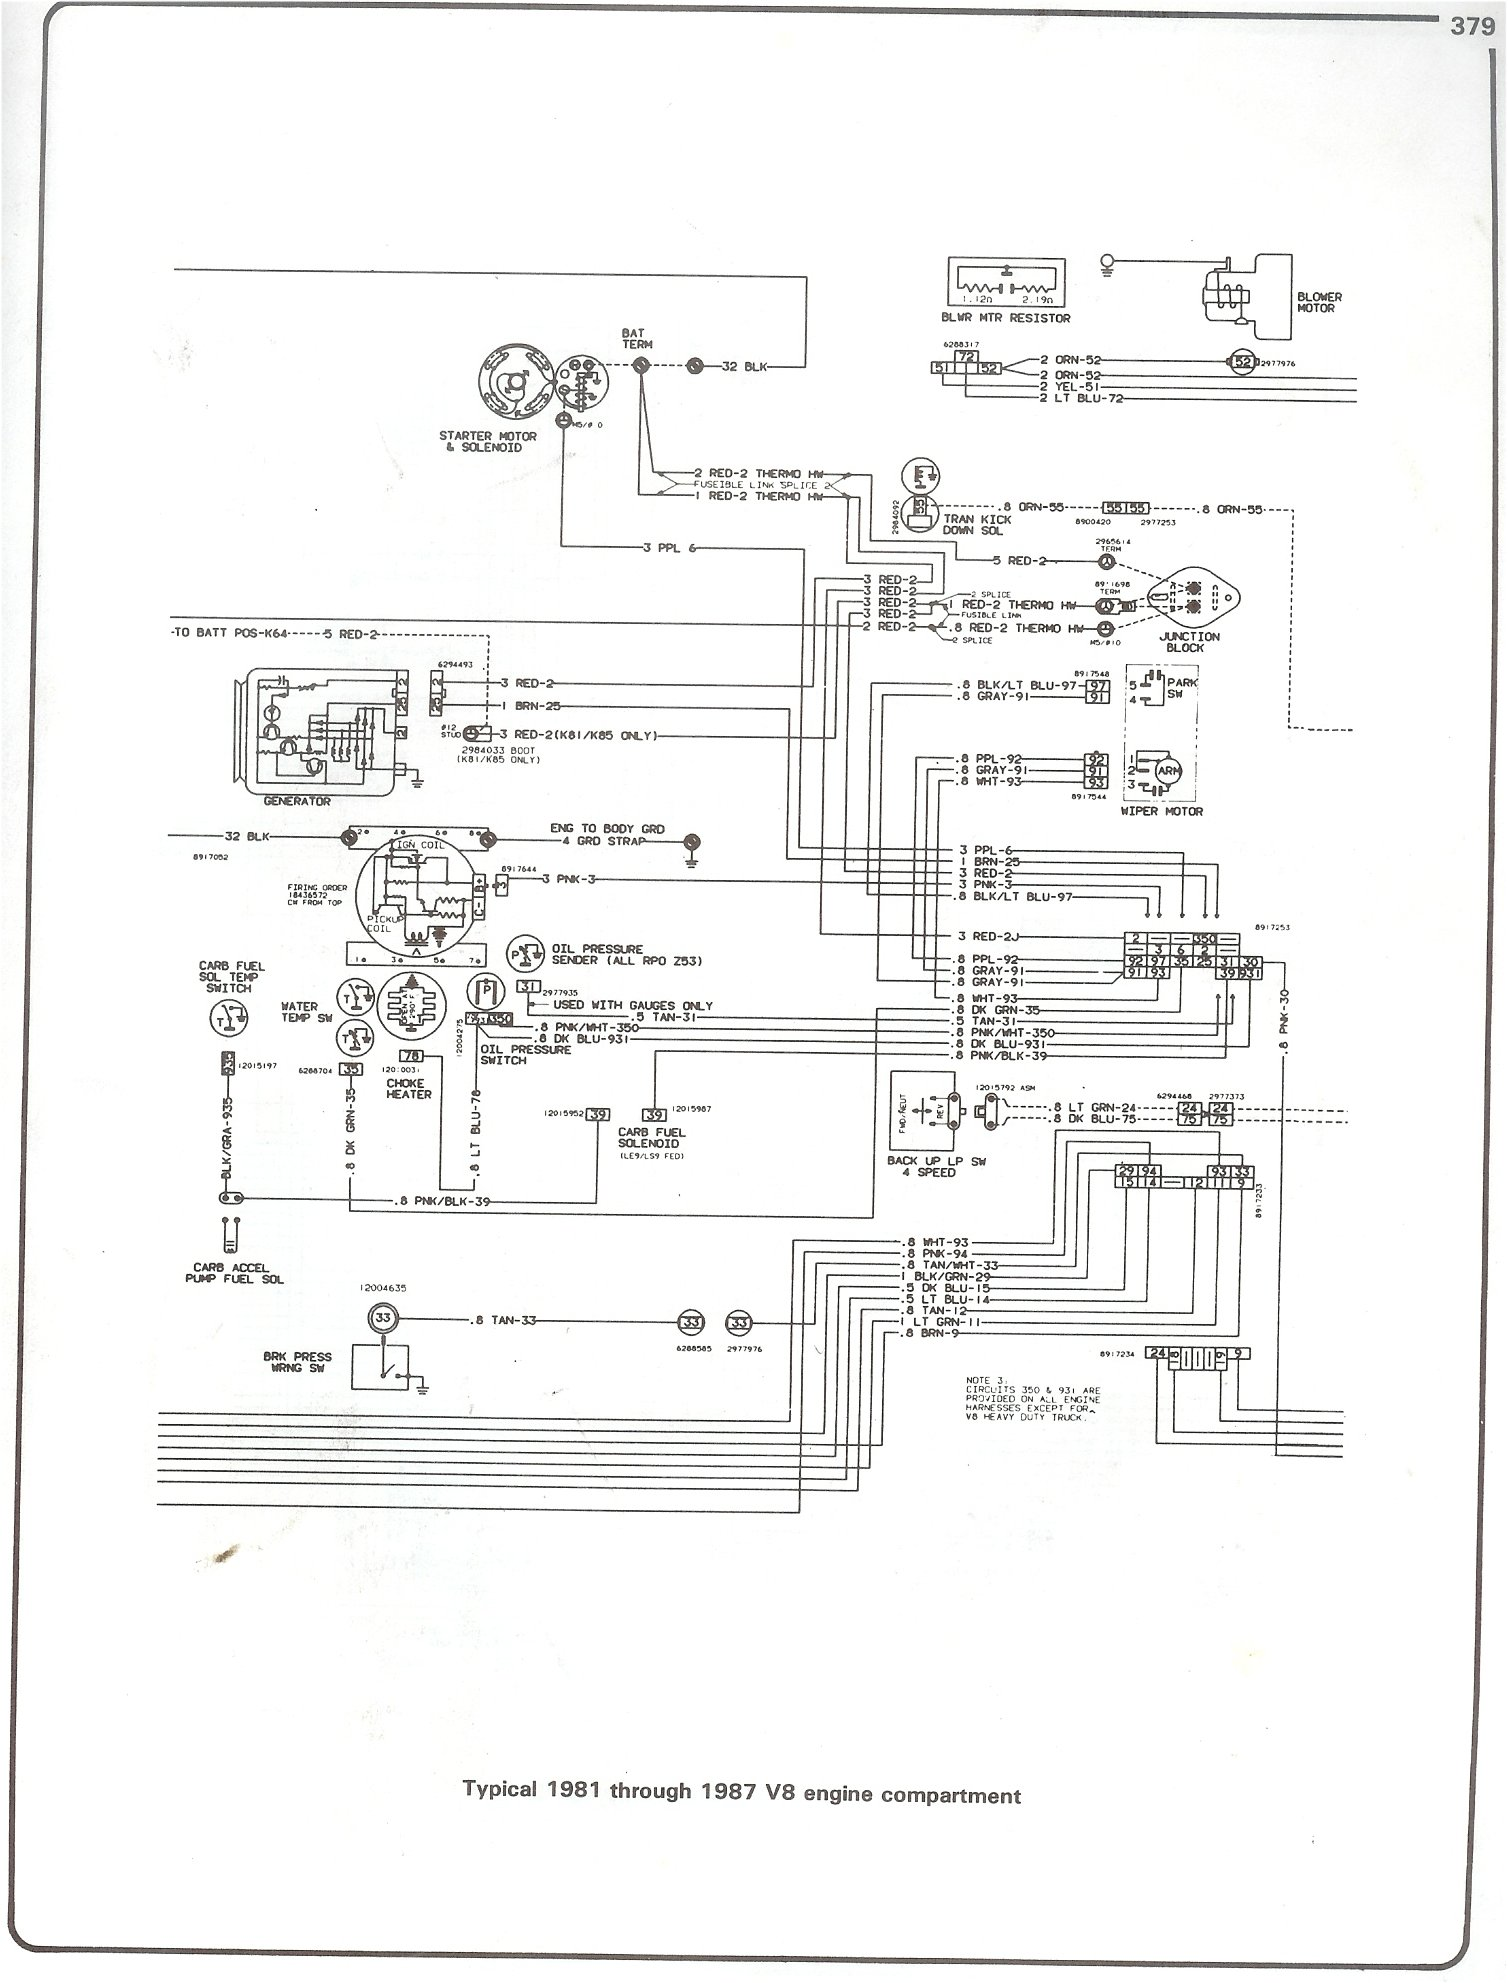 81 87_V8_engine complete 73 87 wiring diagrams 1987 gmc truck wiring diagram at webbmarketing.co